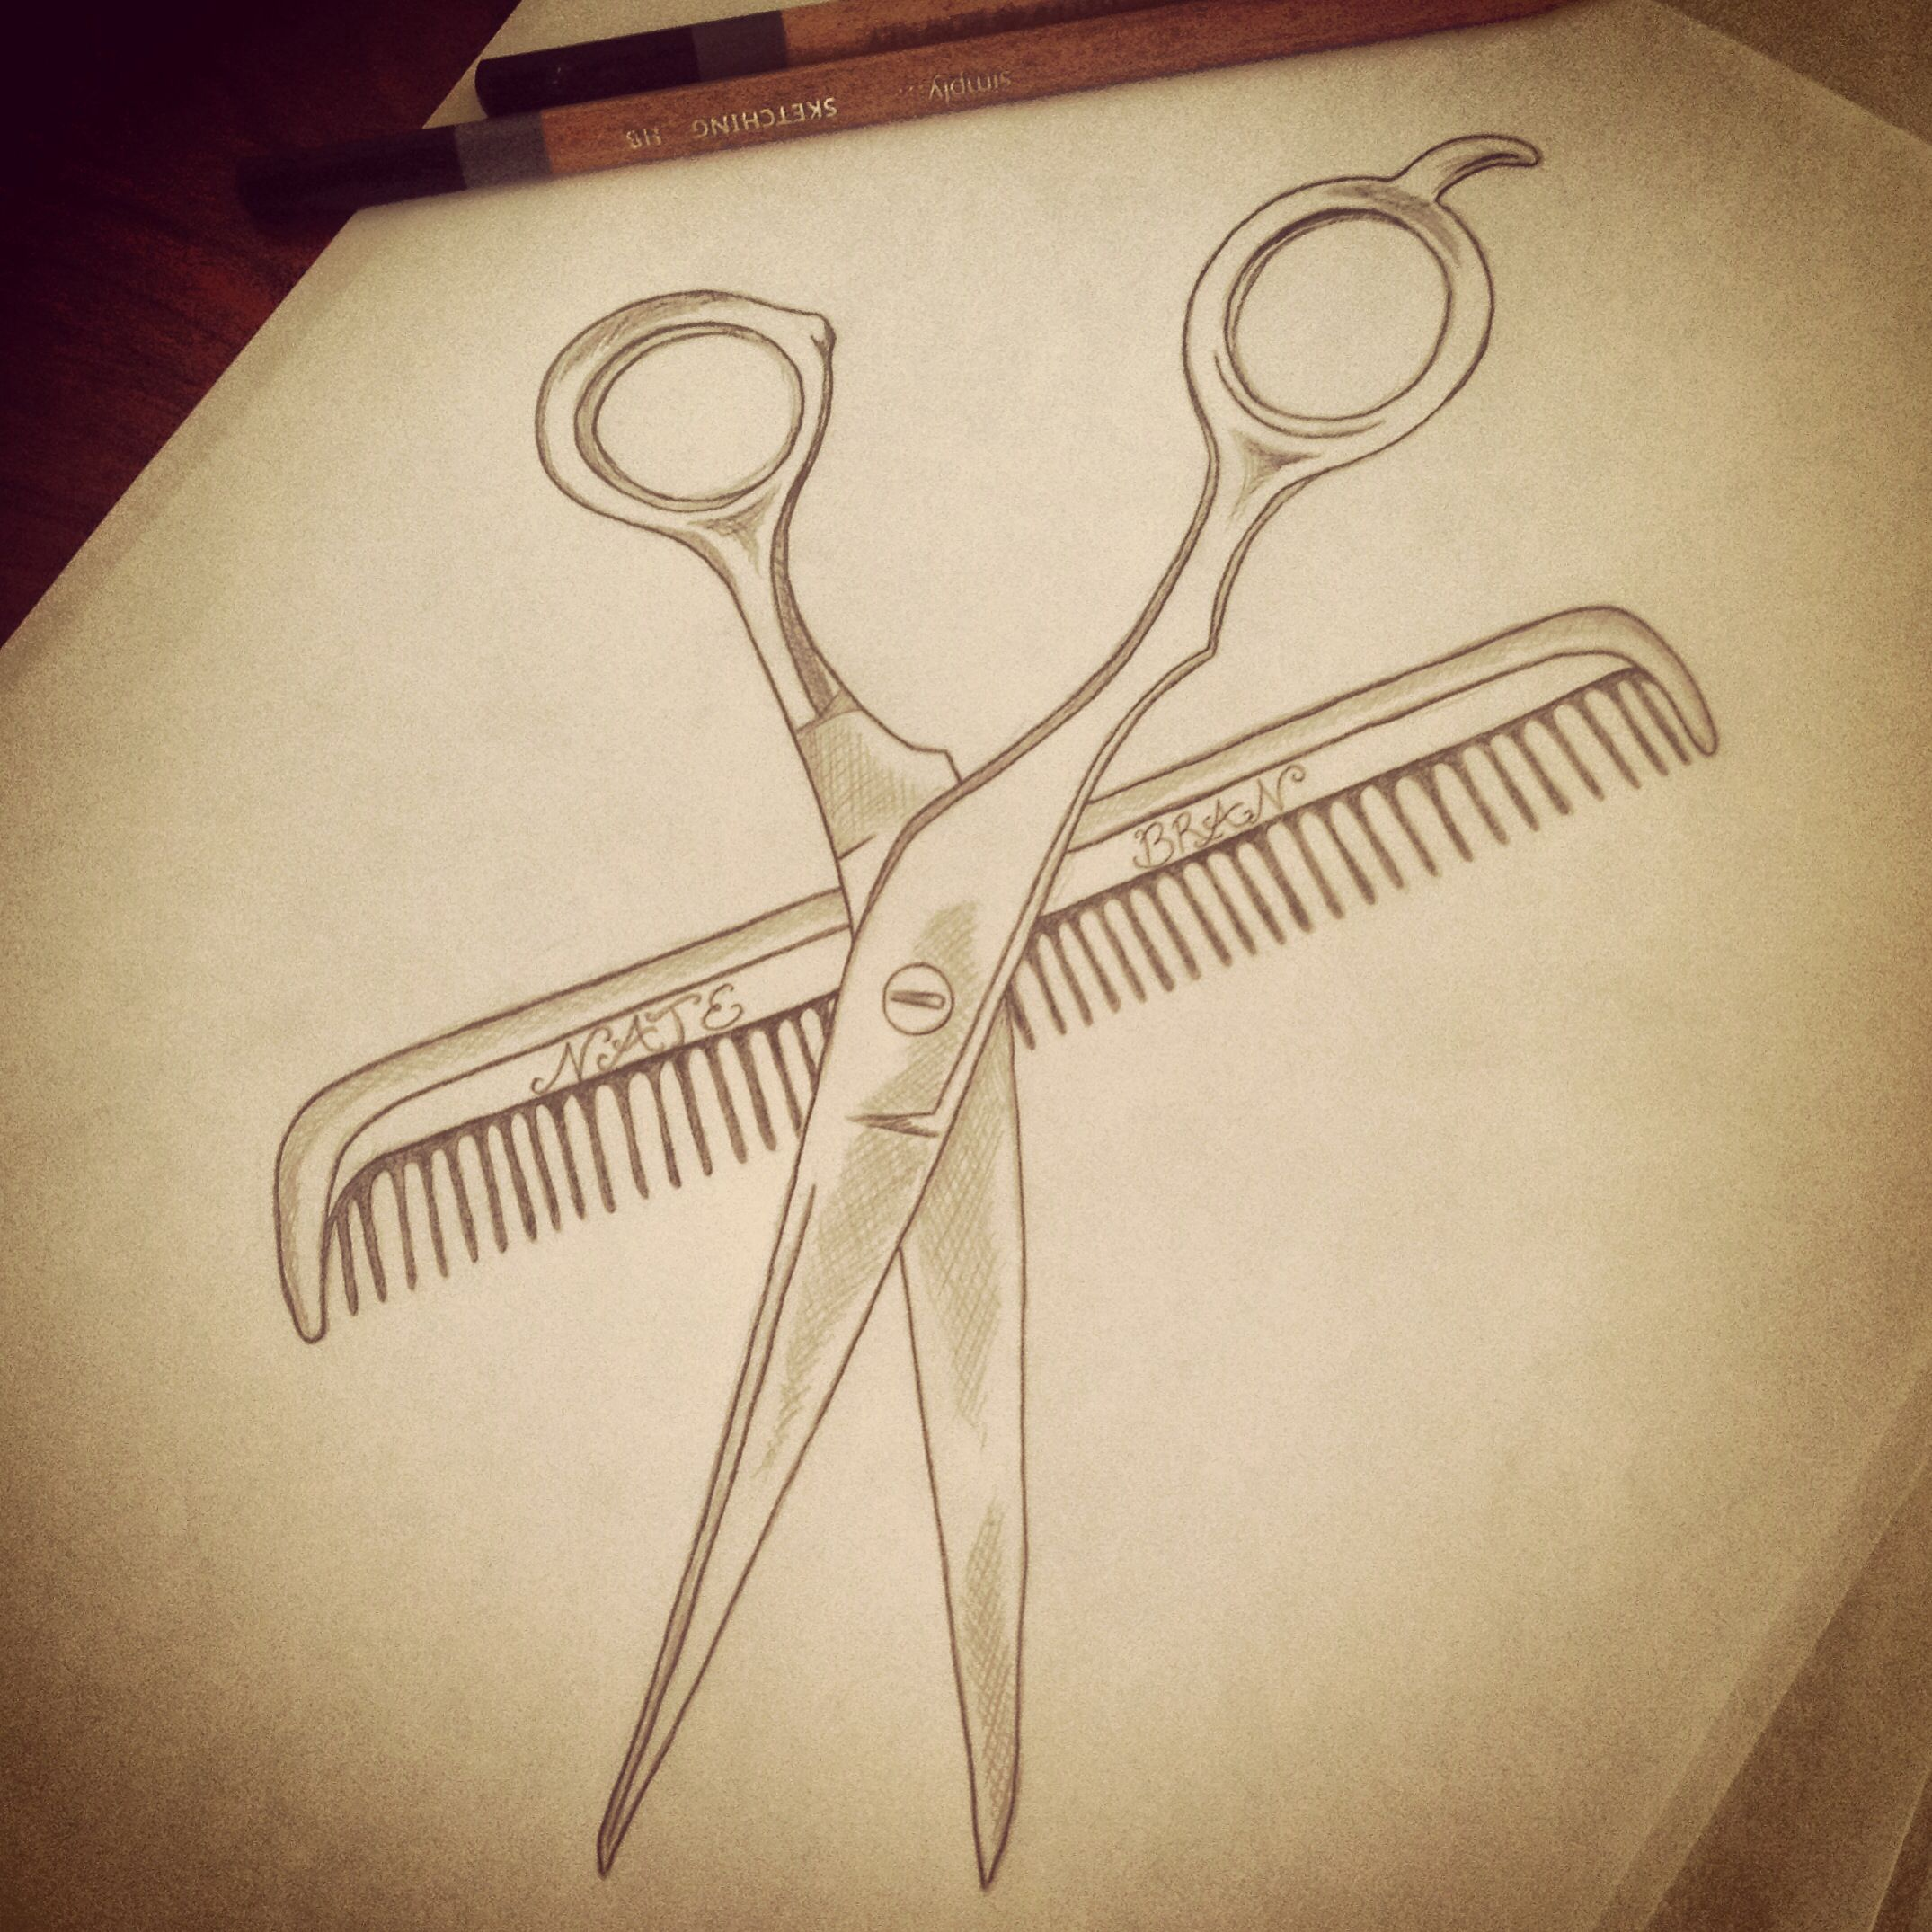 hairstylist #shears #comb #couples